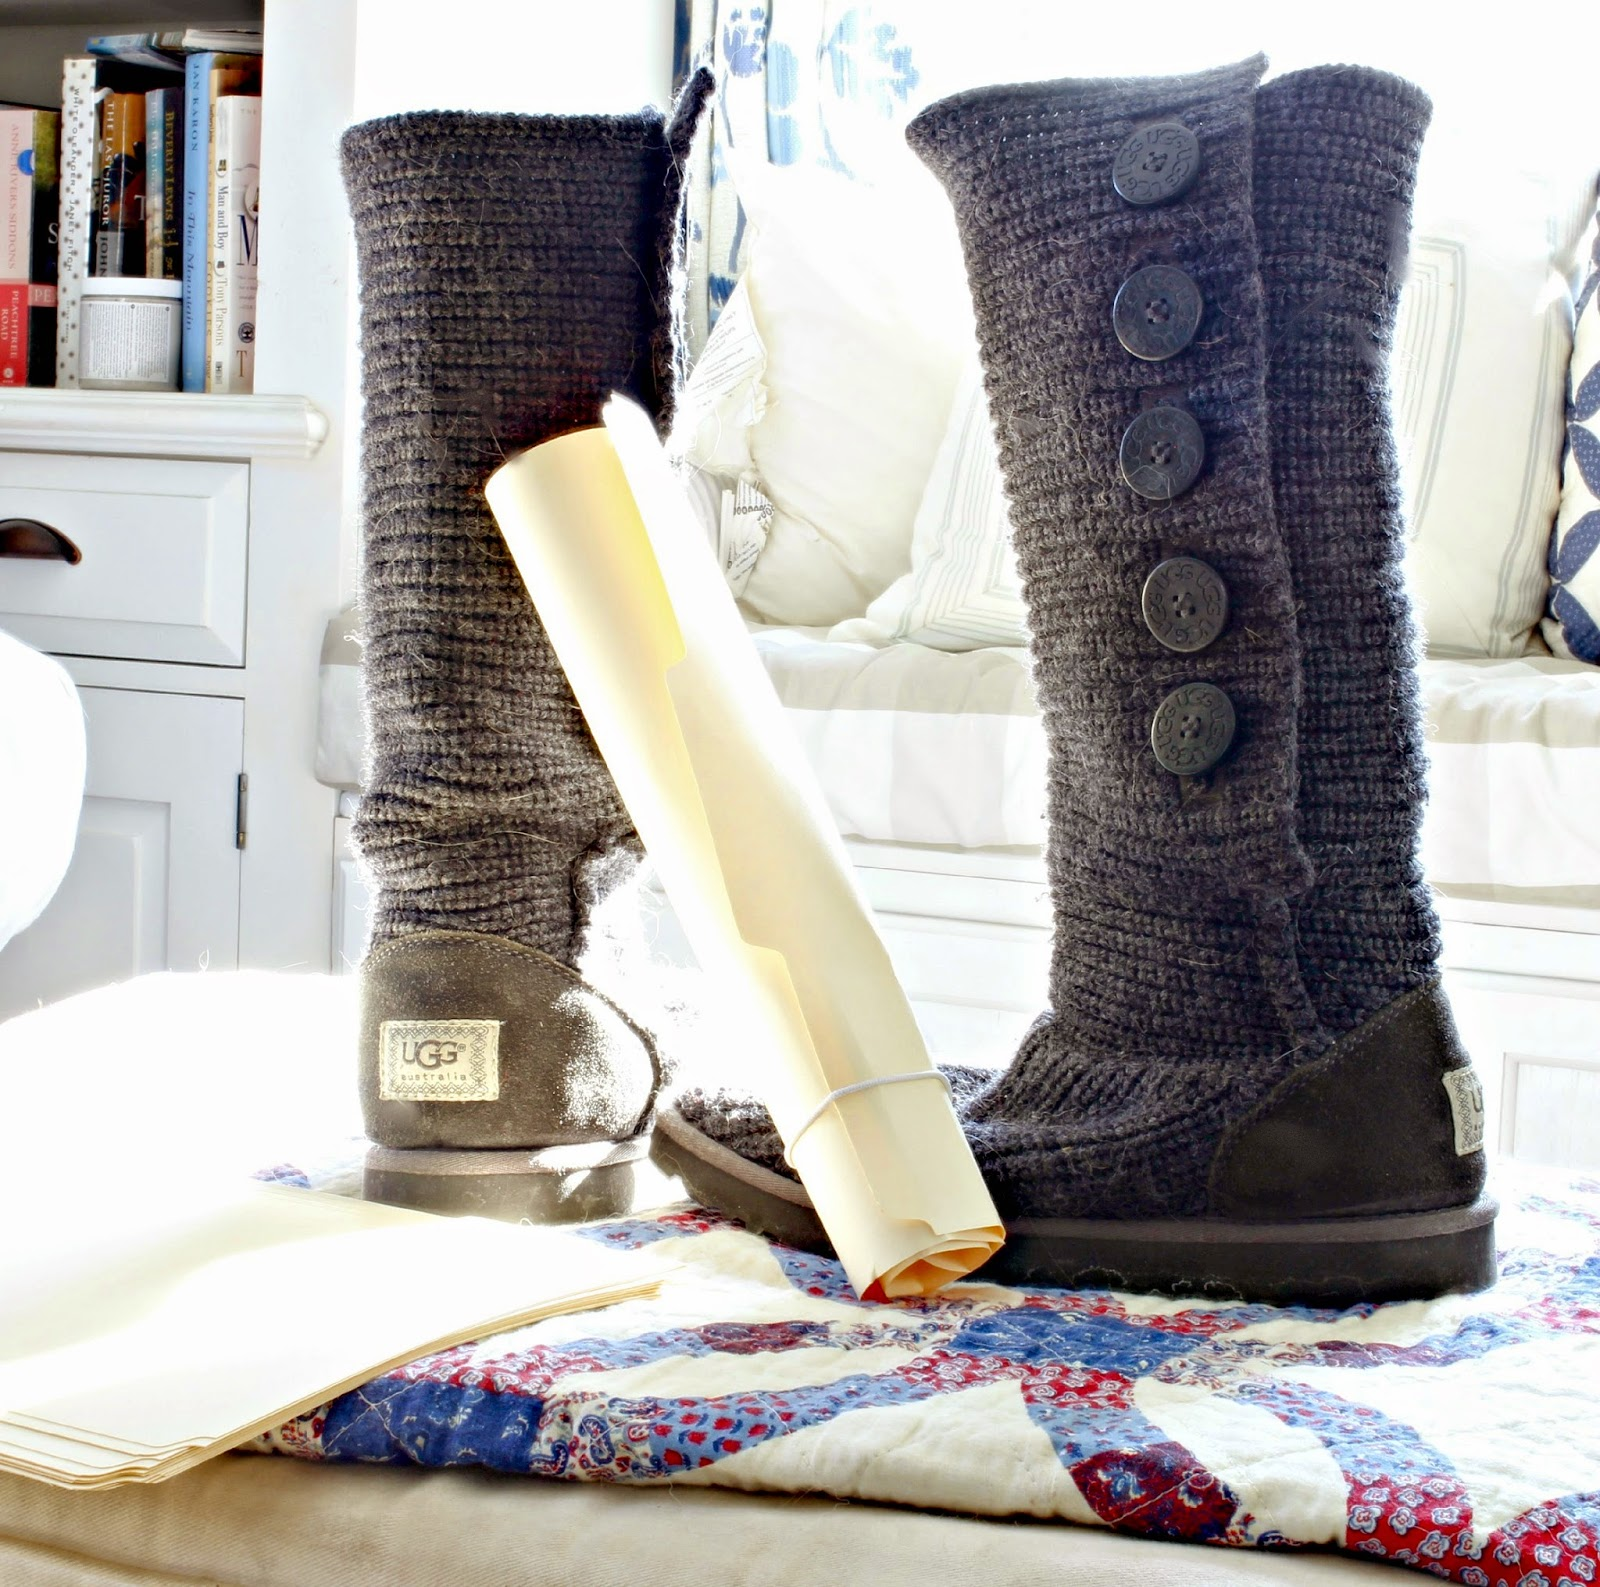 Manila folder used as boot shapers-www.goldenboysandme.com